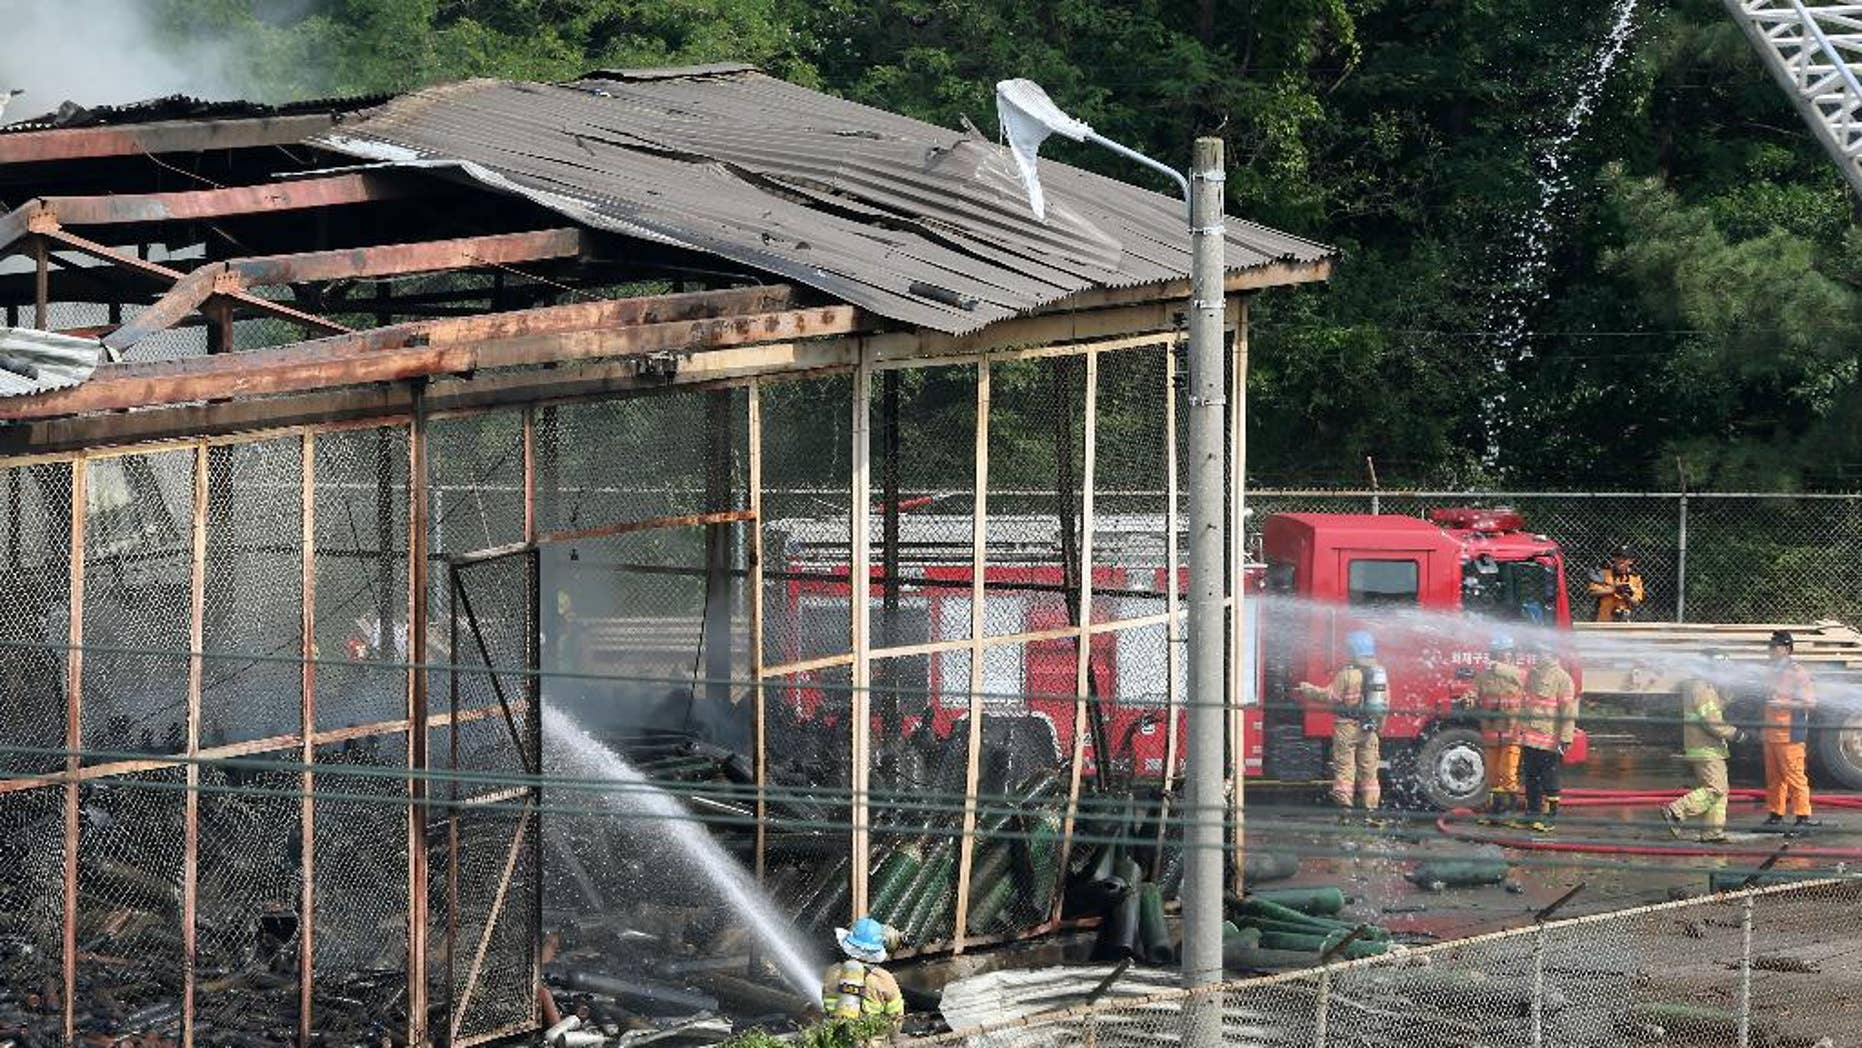 Firefighters extinguish a fire at Camp Carroll in Chilgok, South Korea, Thursday, May 19, 2016. An oxygen tank blew up at the U.S. military base in South Korea, causing a fire, but there were no reports of casualties. The U.S. military said it was investigating the cause of the blast Thursday at Camp Carroll, 280 kilometers (175 miles) southeast of the Seoul. (Kim Jun-beum/Yonhap via AP) KOREA OUT